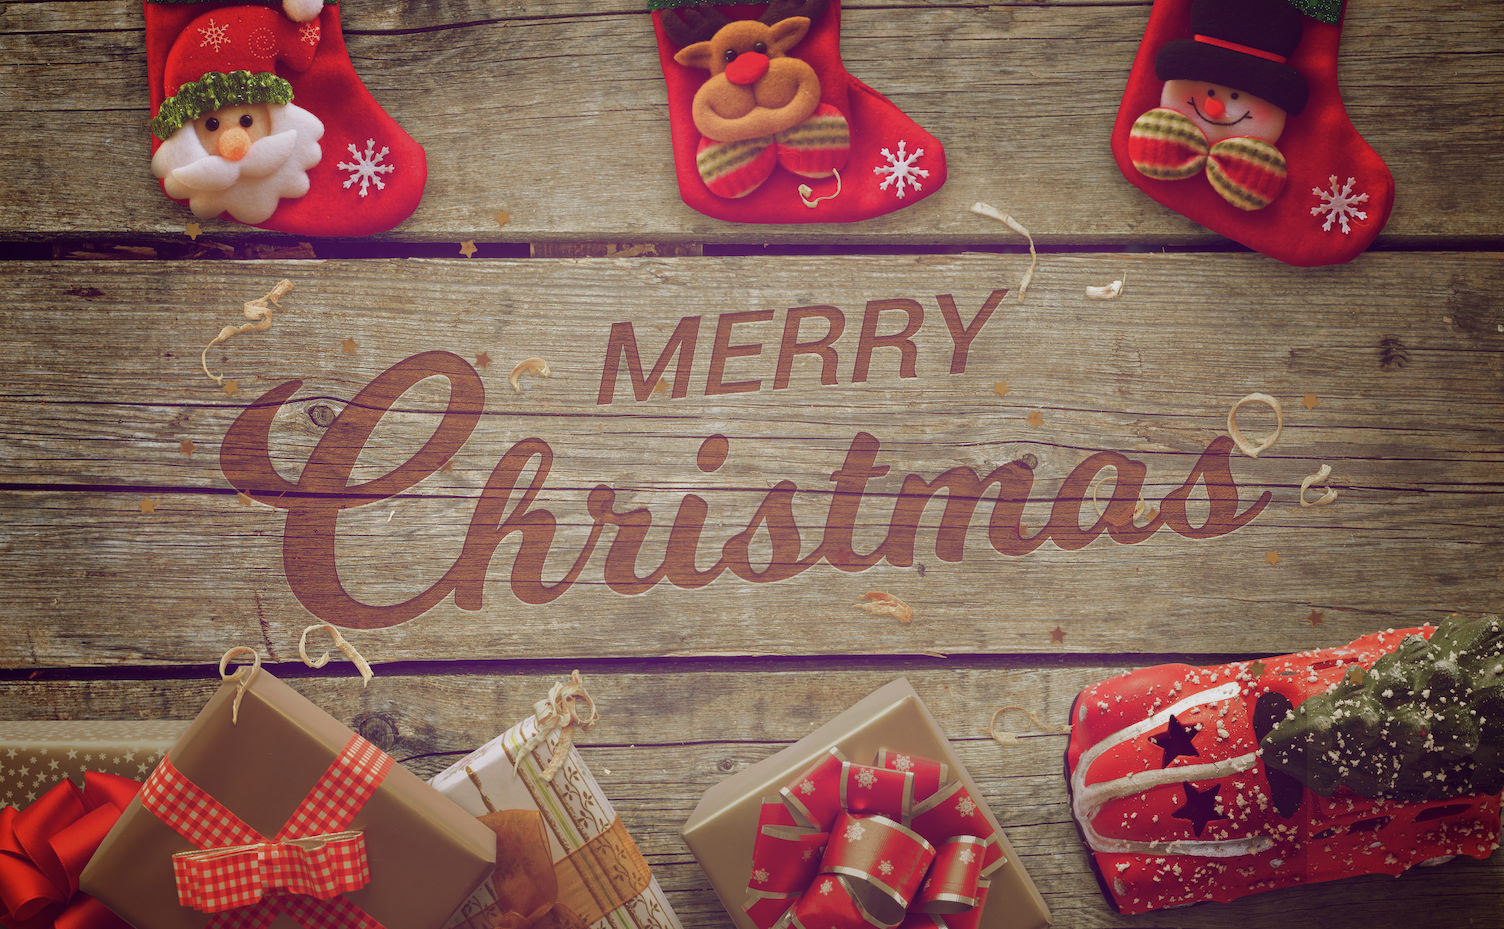 Merry Christmas from Parkside Motors